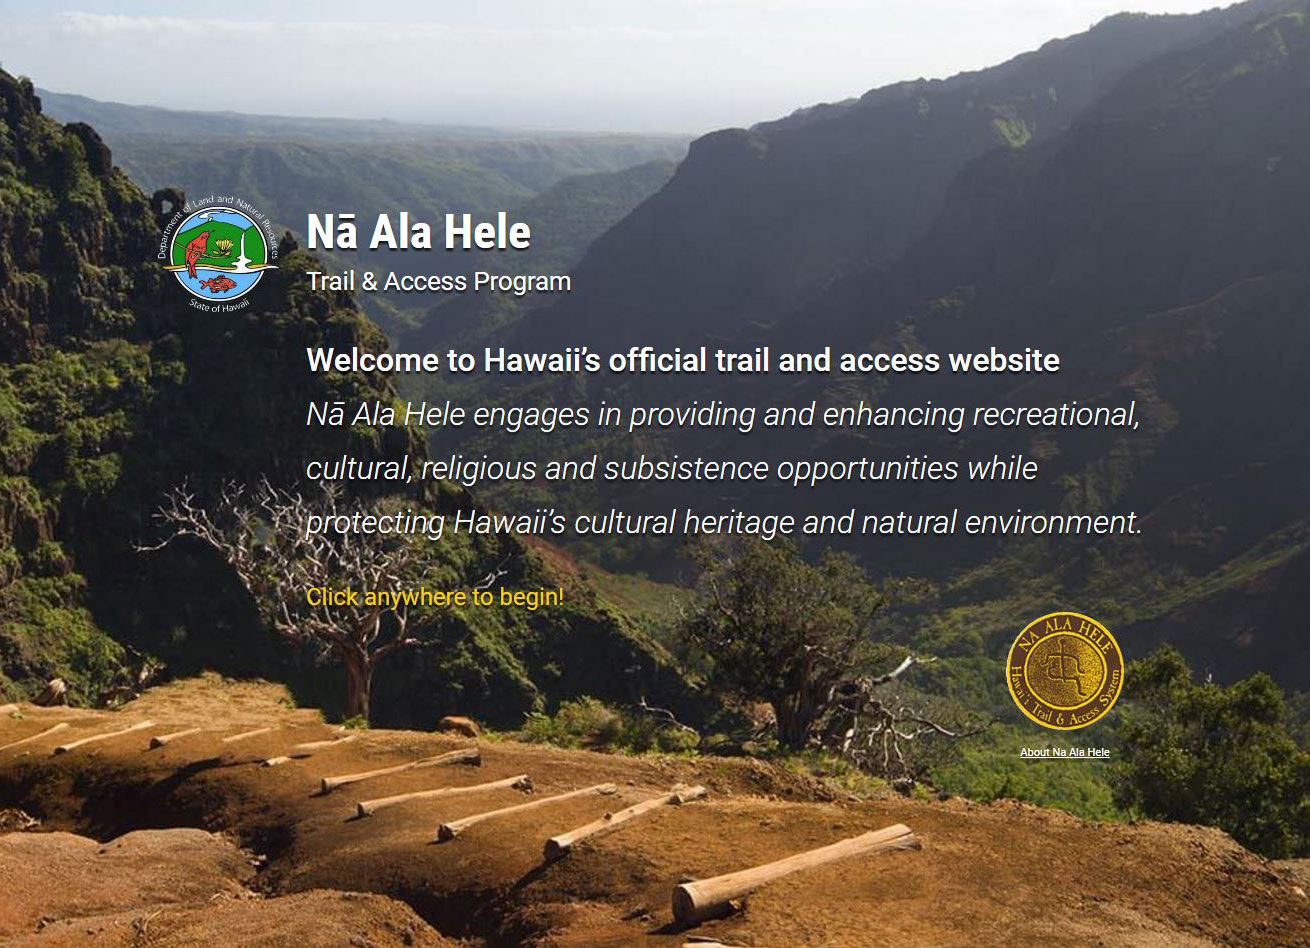 na ala hele trail access program website https://hawaiitrails.org/trails/#/